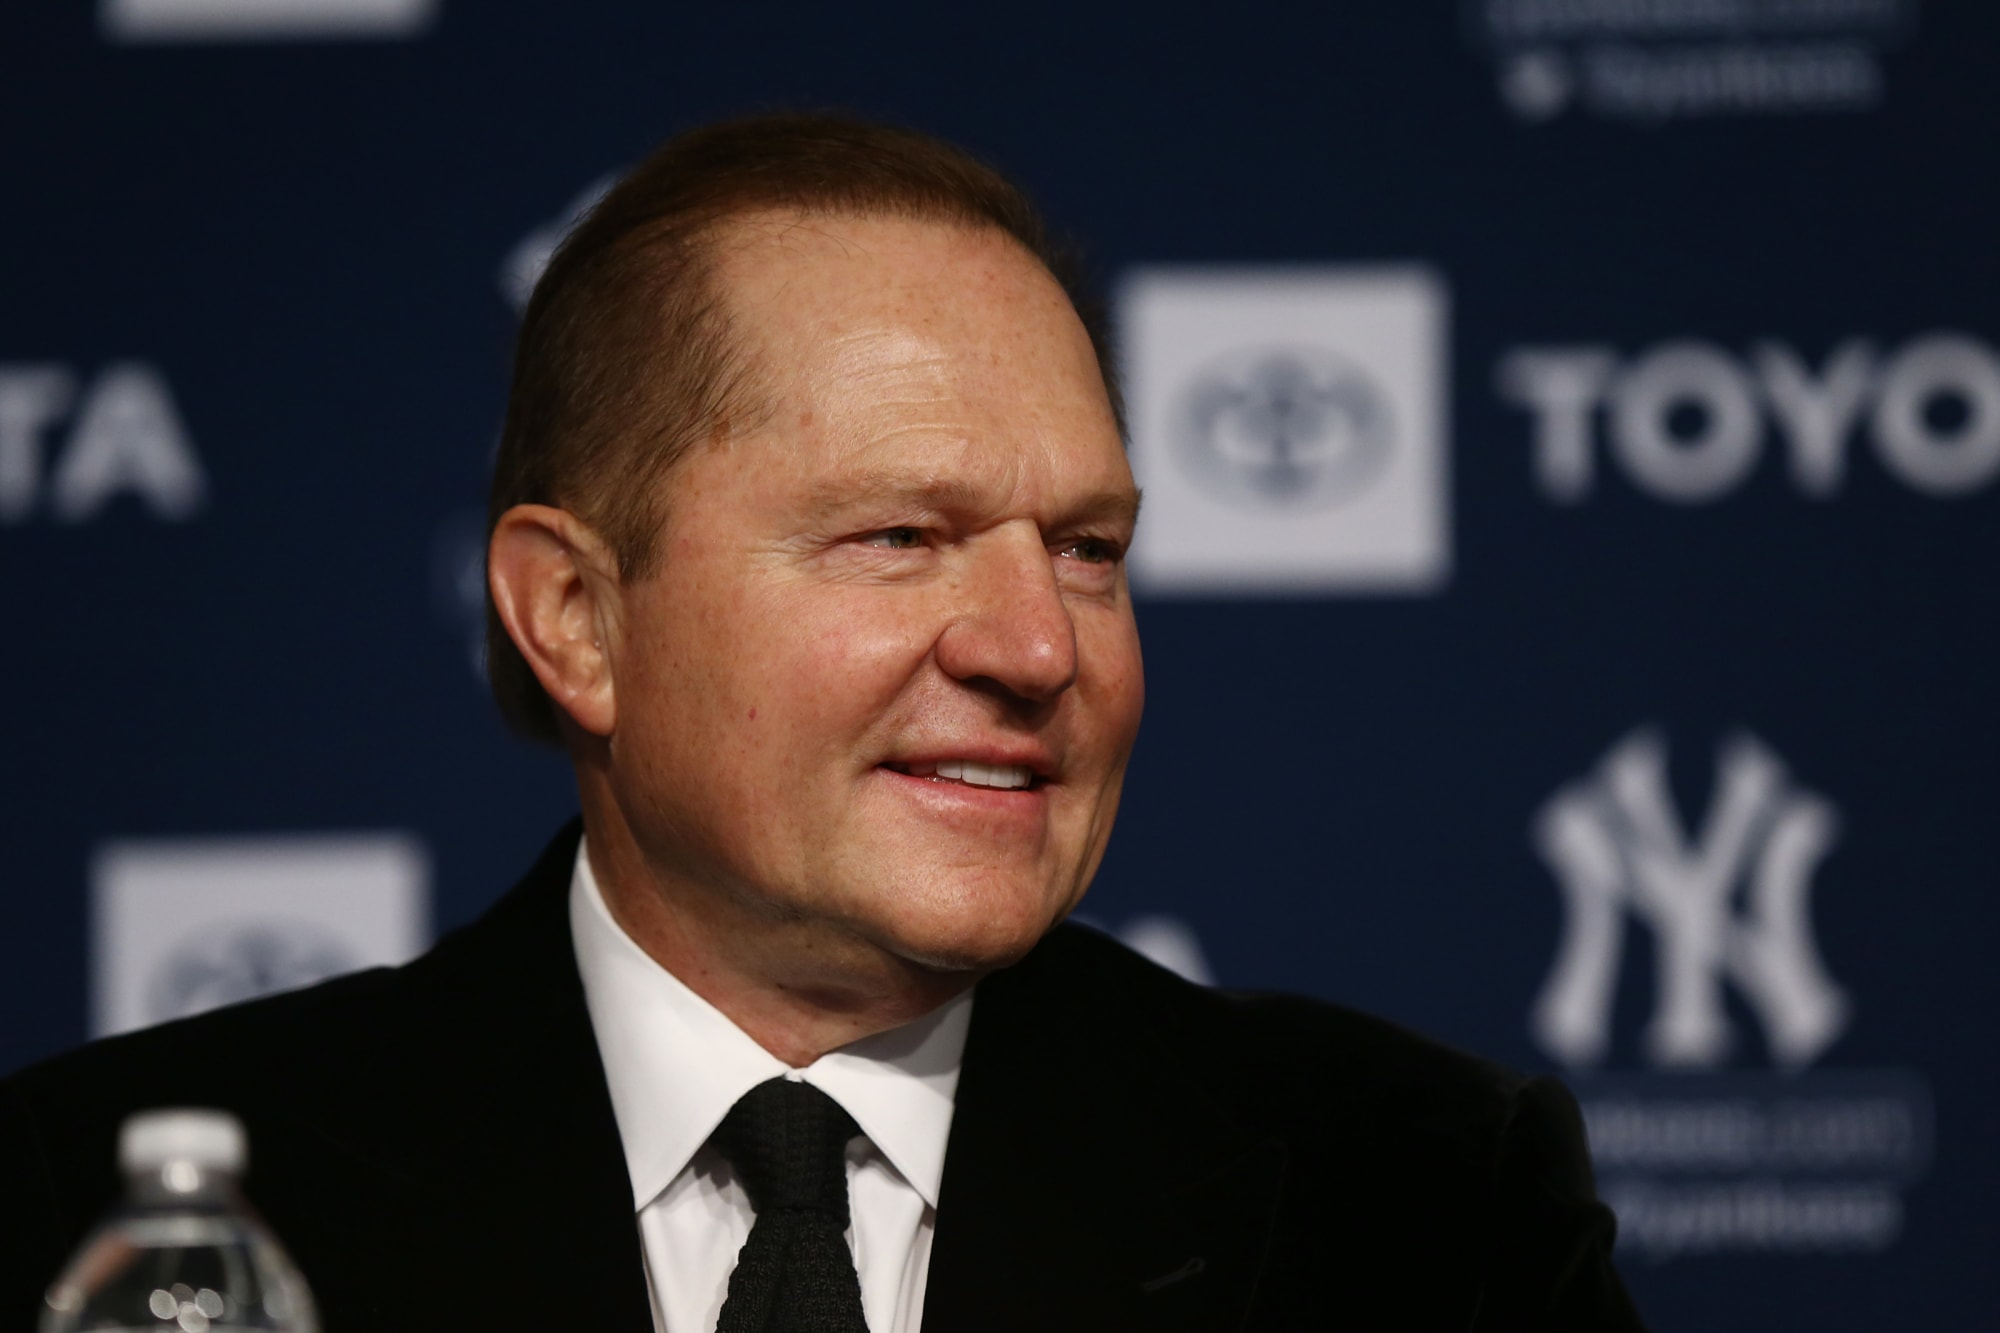 Reds news: Trevor Bauer has a beef with Scott Boras